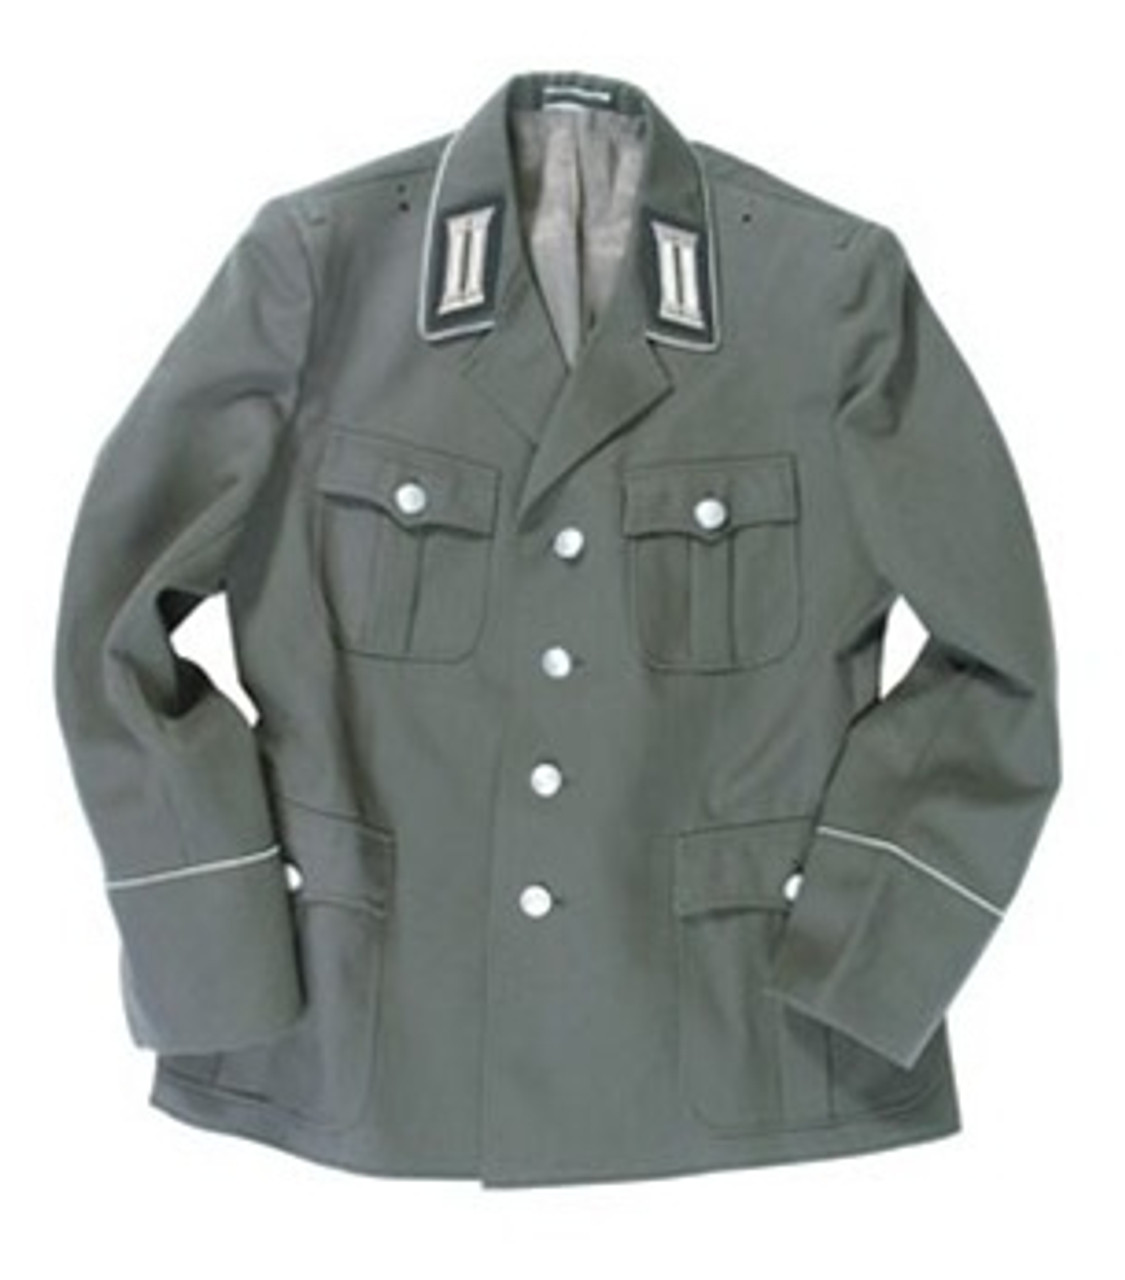 East German Army Officer Service Jacket from Hessen Surplus